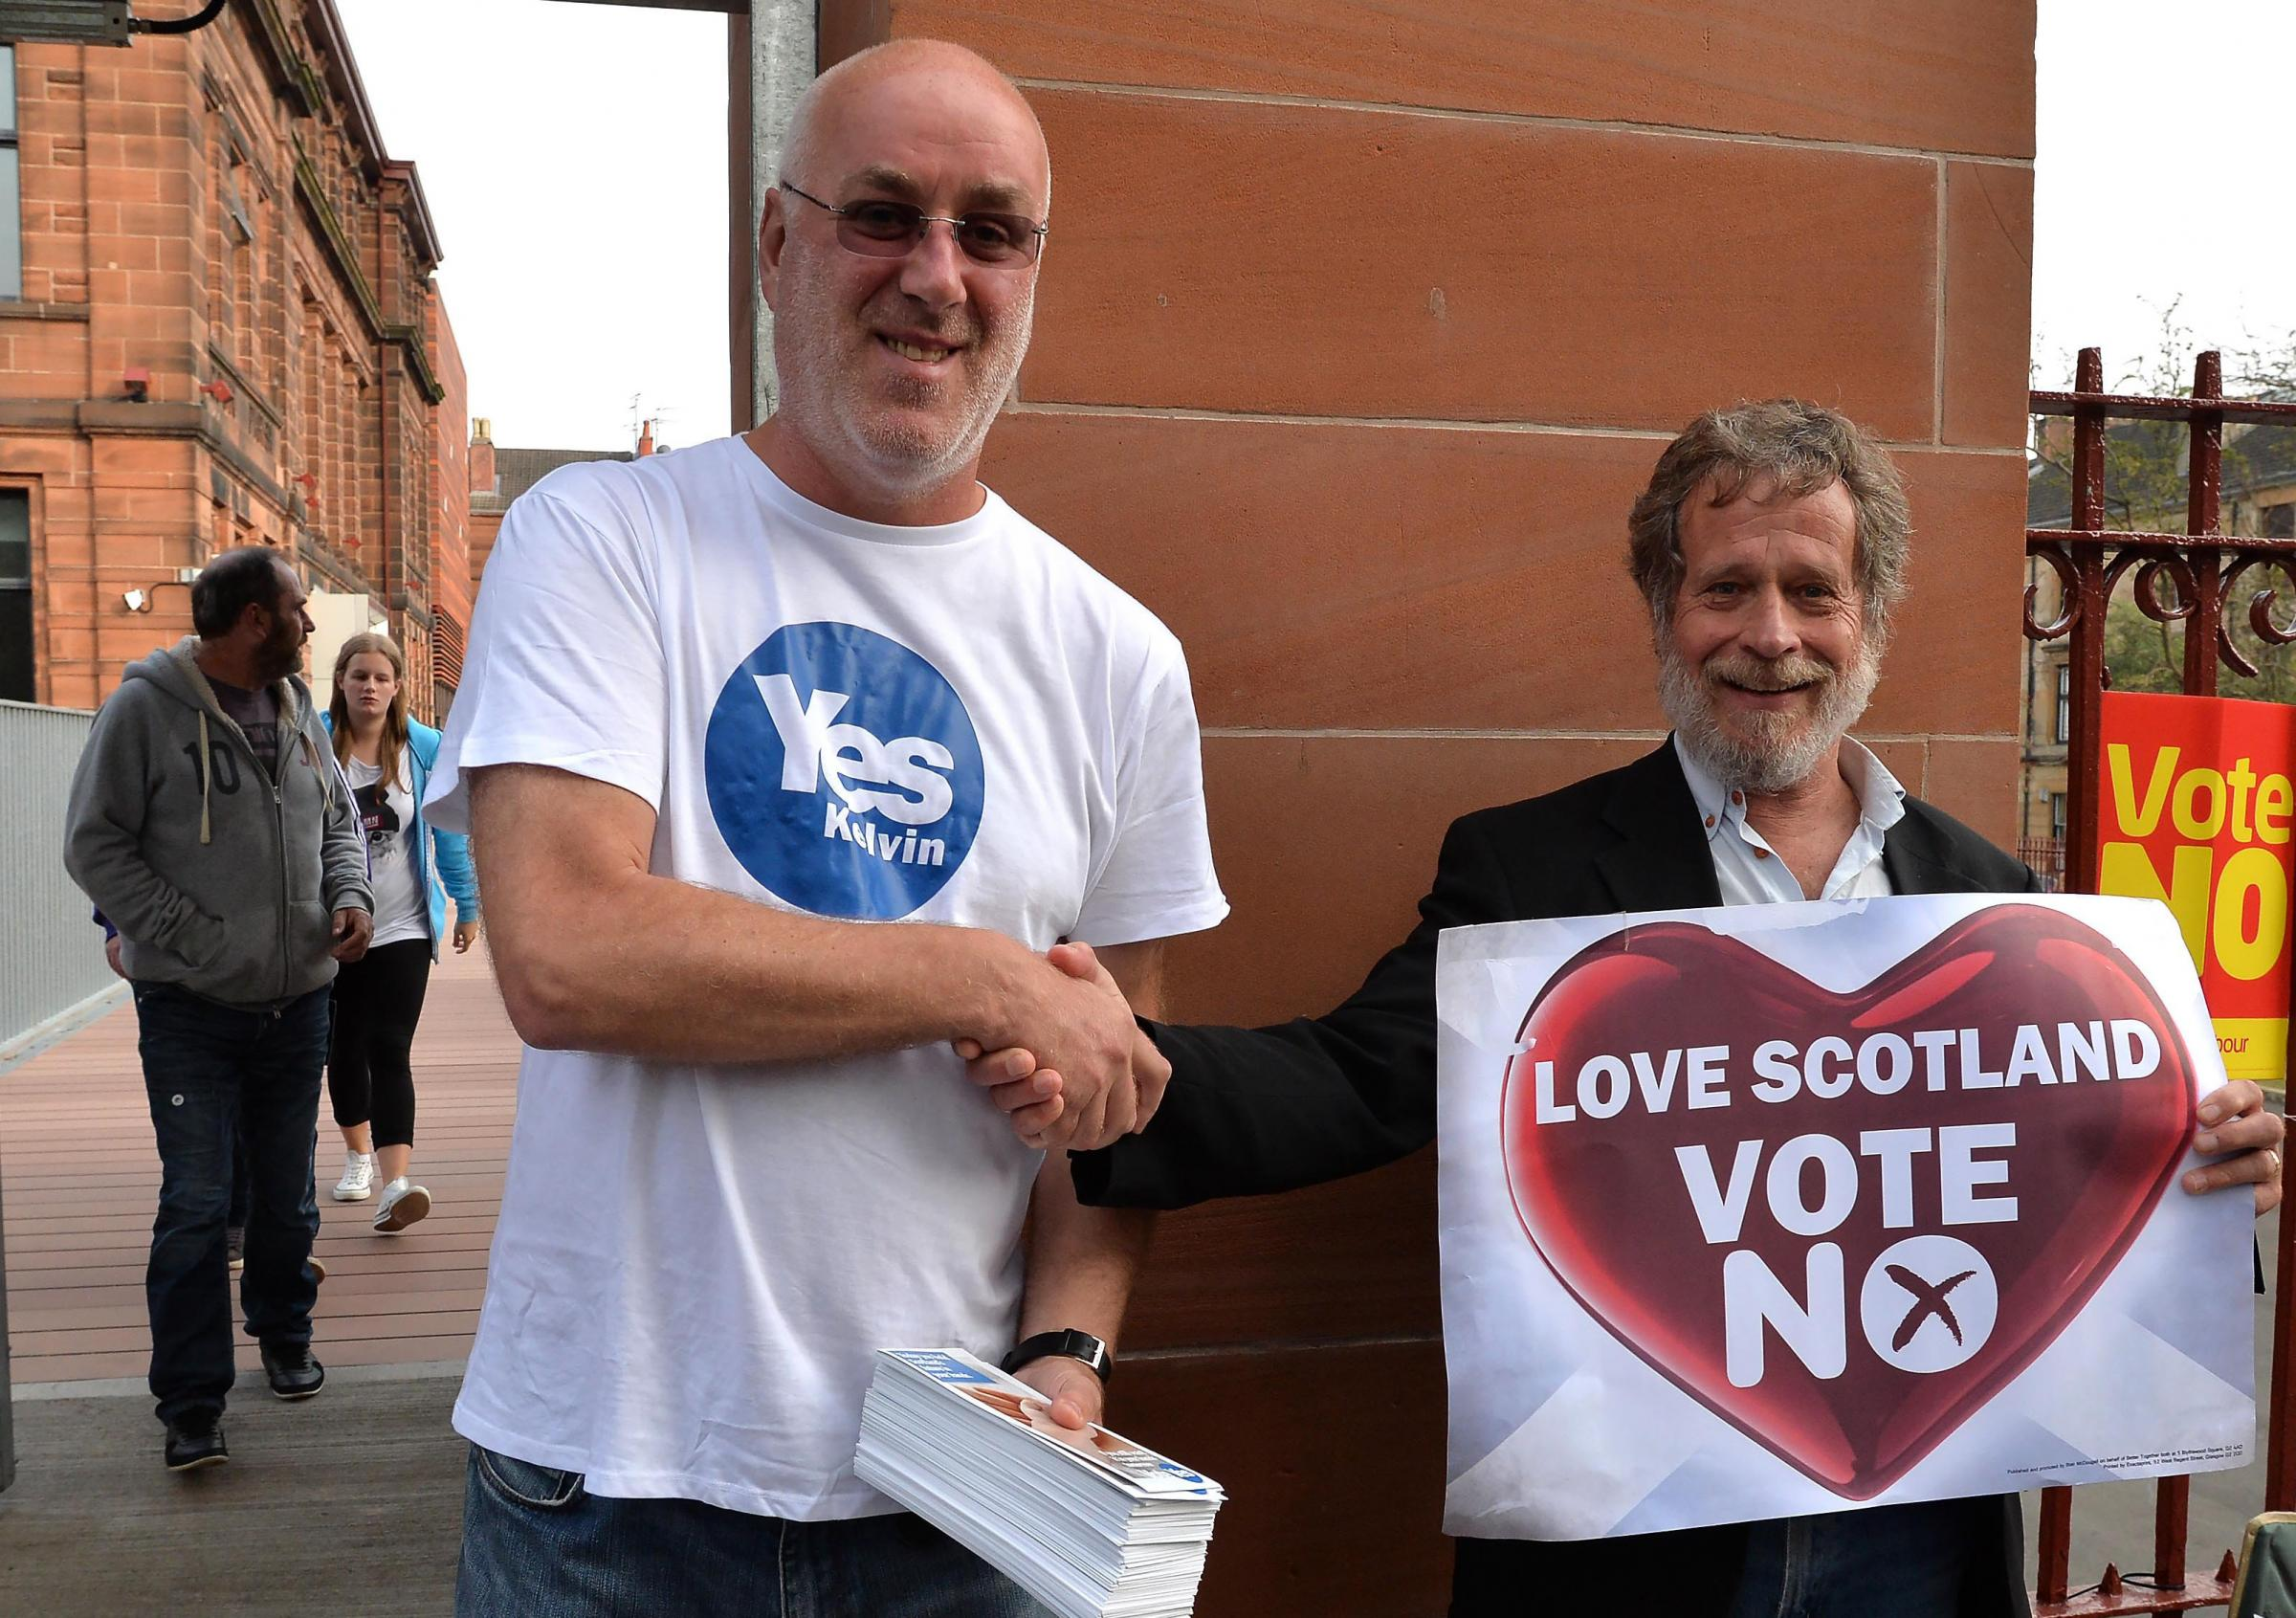 Bringing Yes and No voters together can be a positive and constructive experience